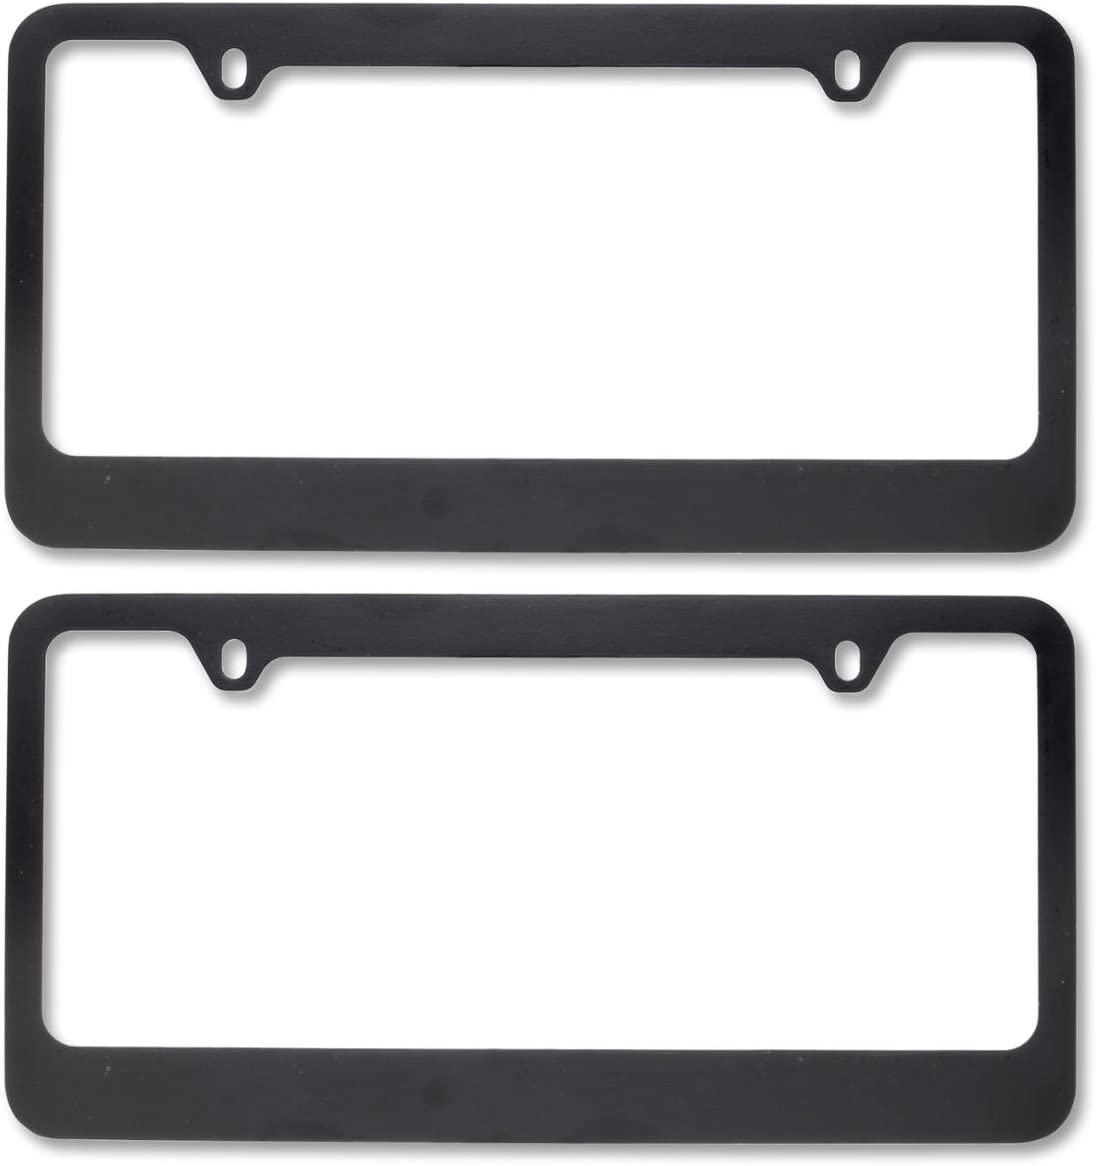 BDK Die-Cast Metal License Plate Frames – Black Matte Plated & Rust-Free with Blank Design (2 Pieces)